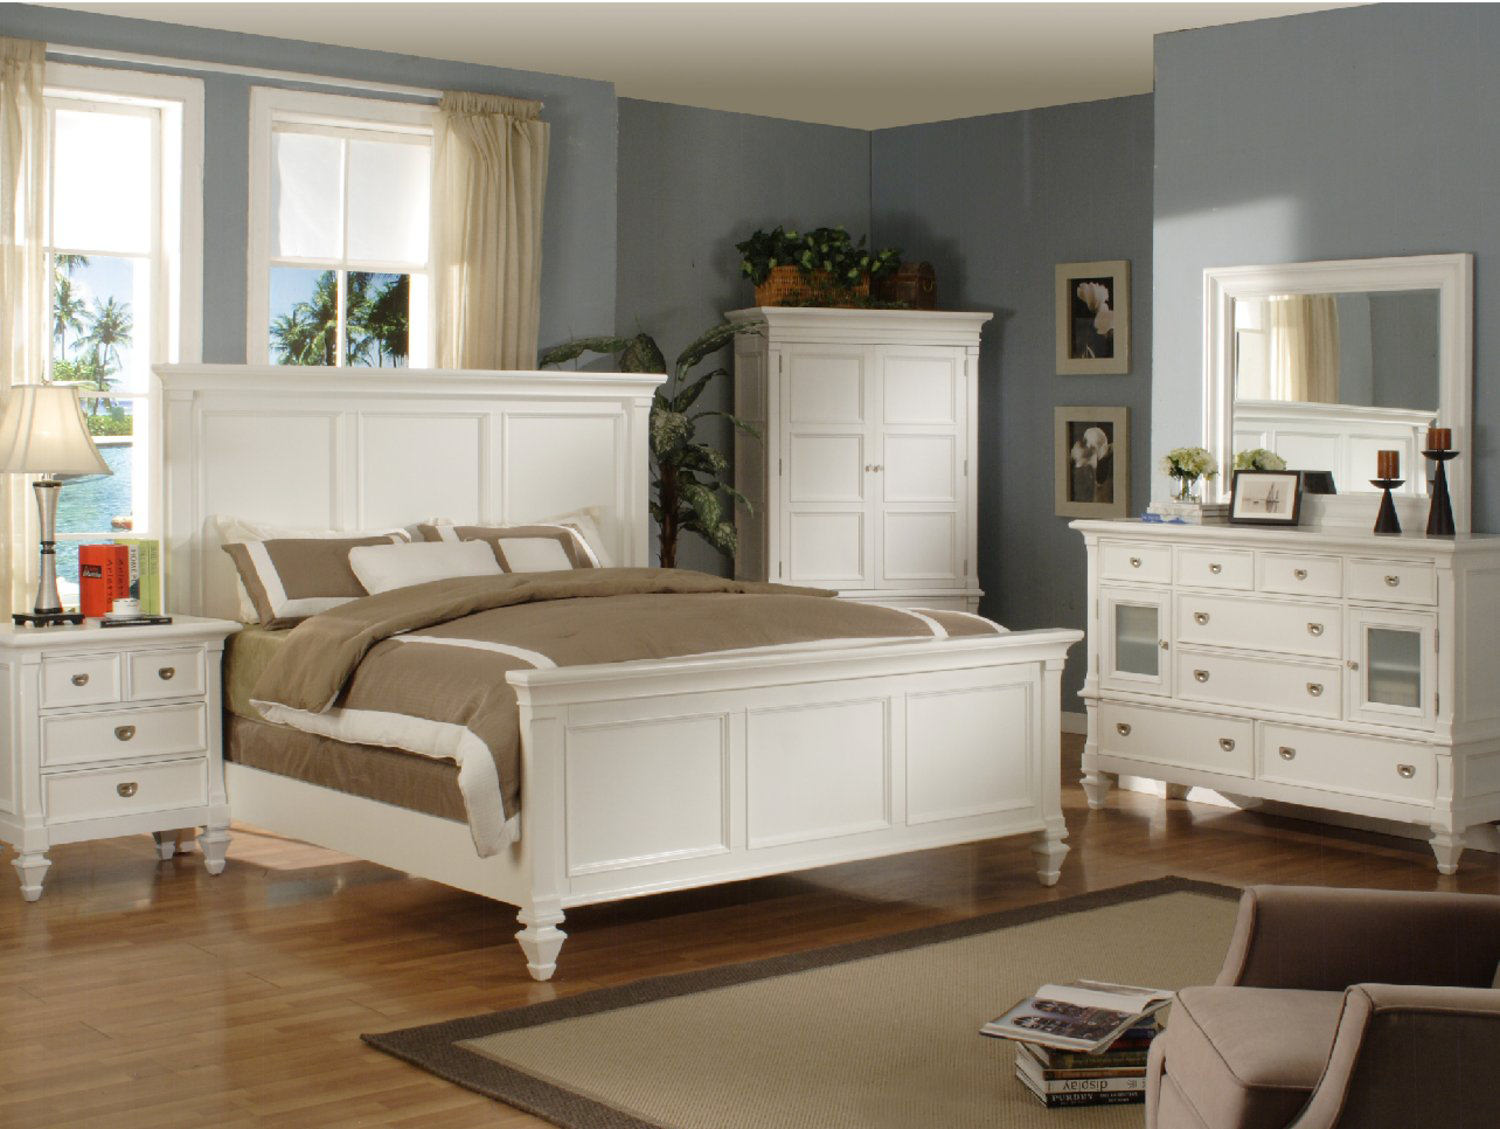 summer breeze queen white panel bed - Queen White Bed Frame